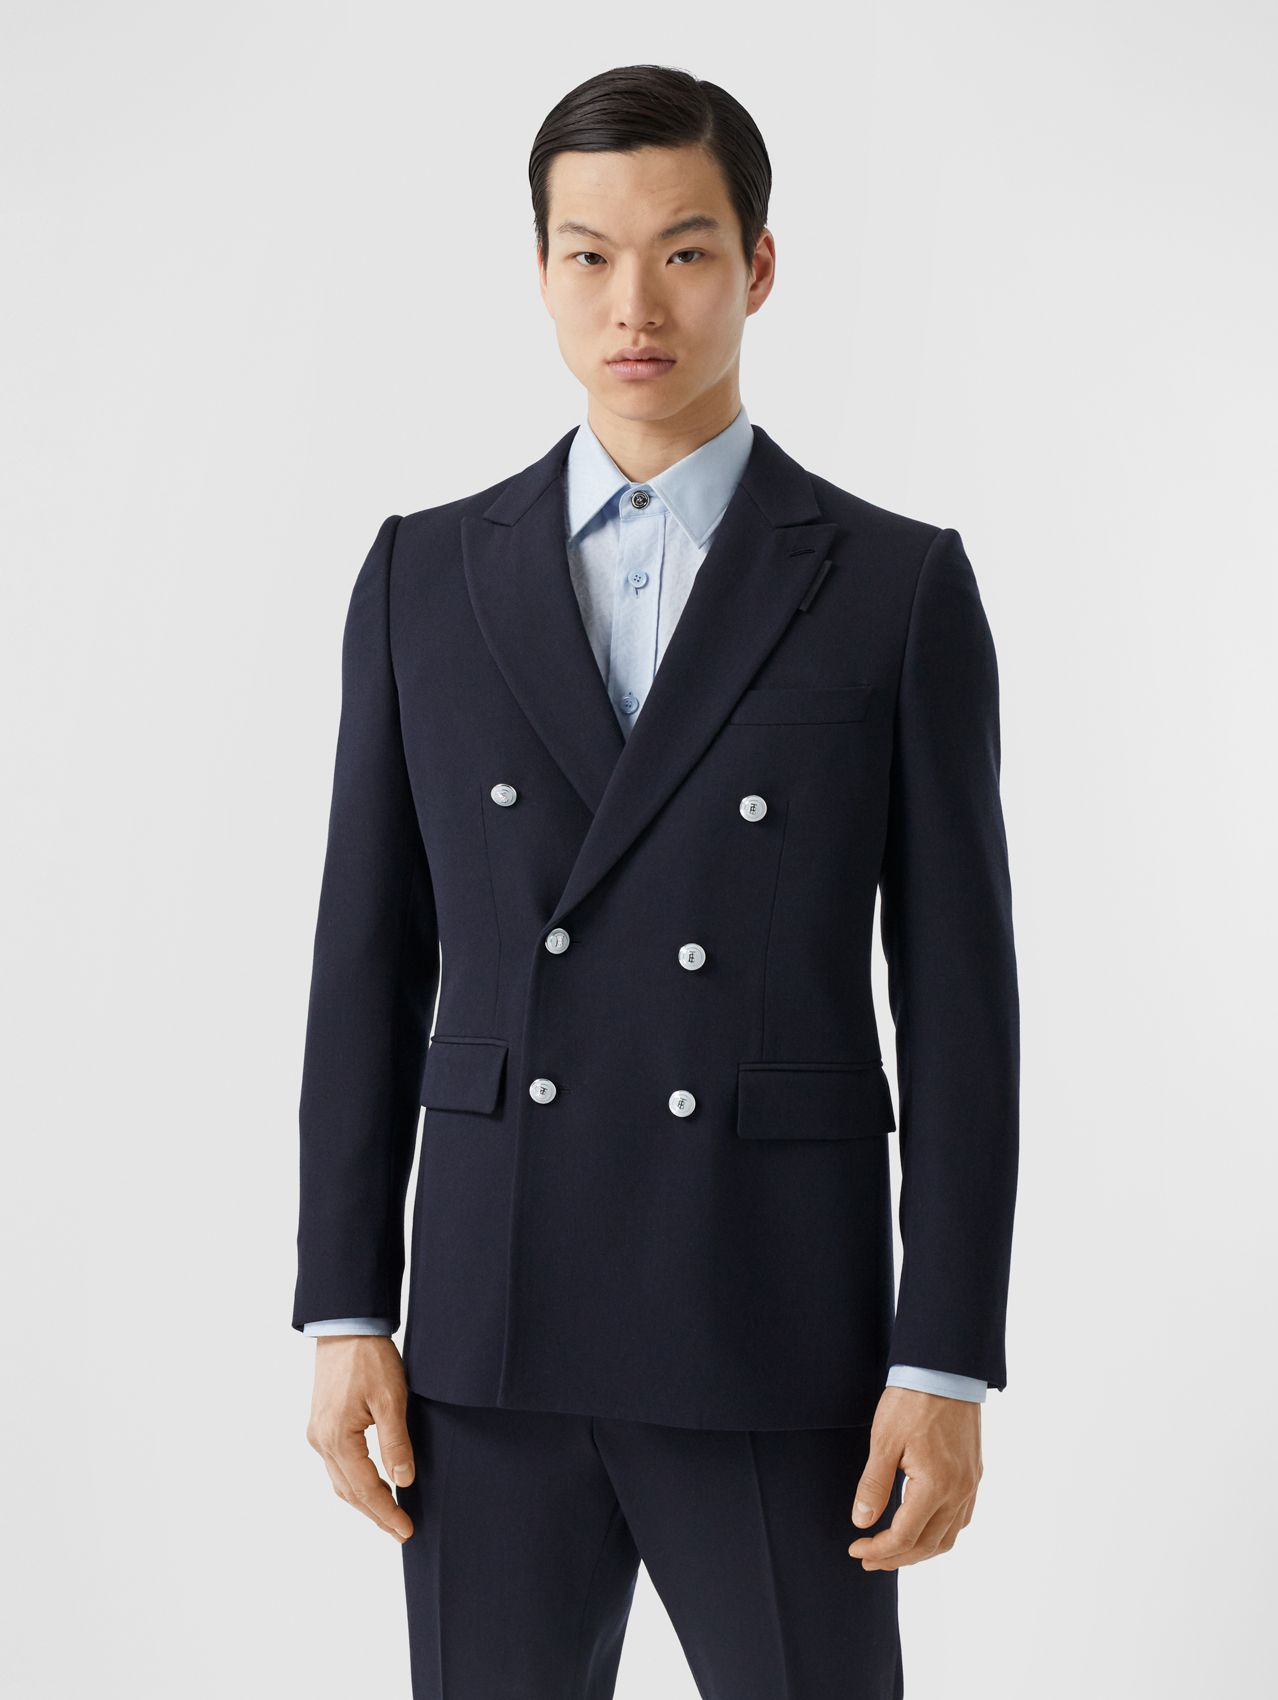 English Fit Wool Double-breasted Jacket